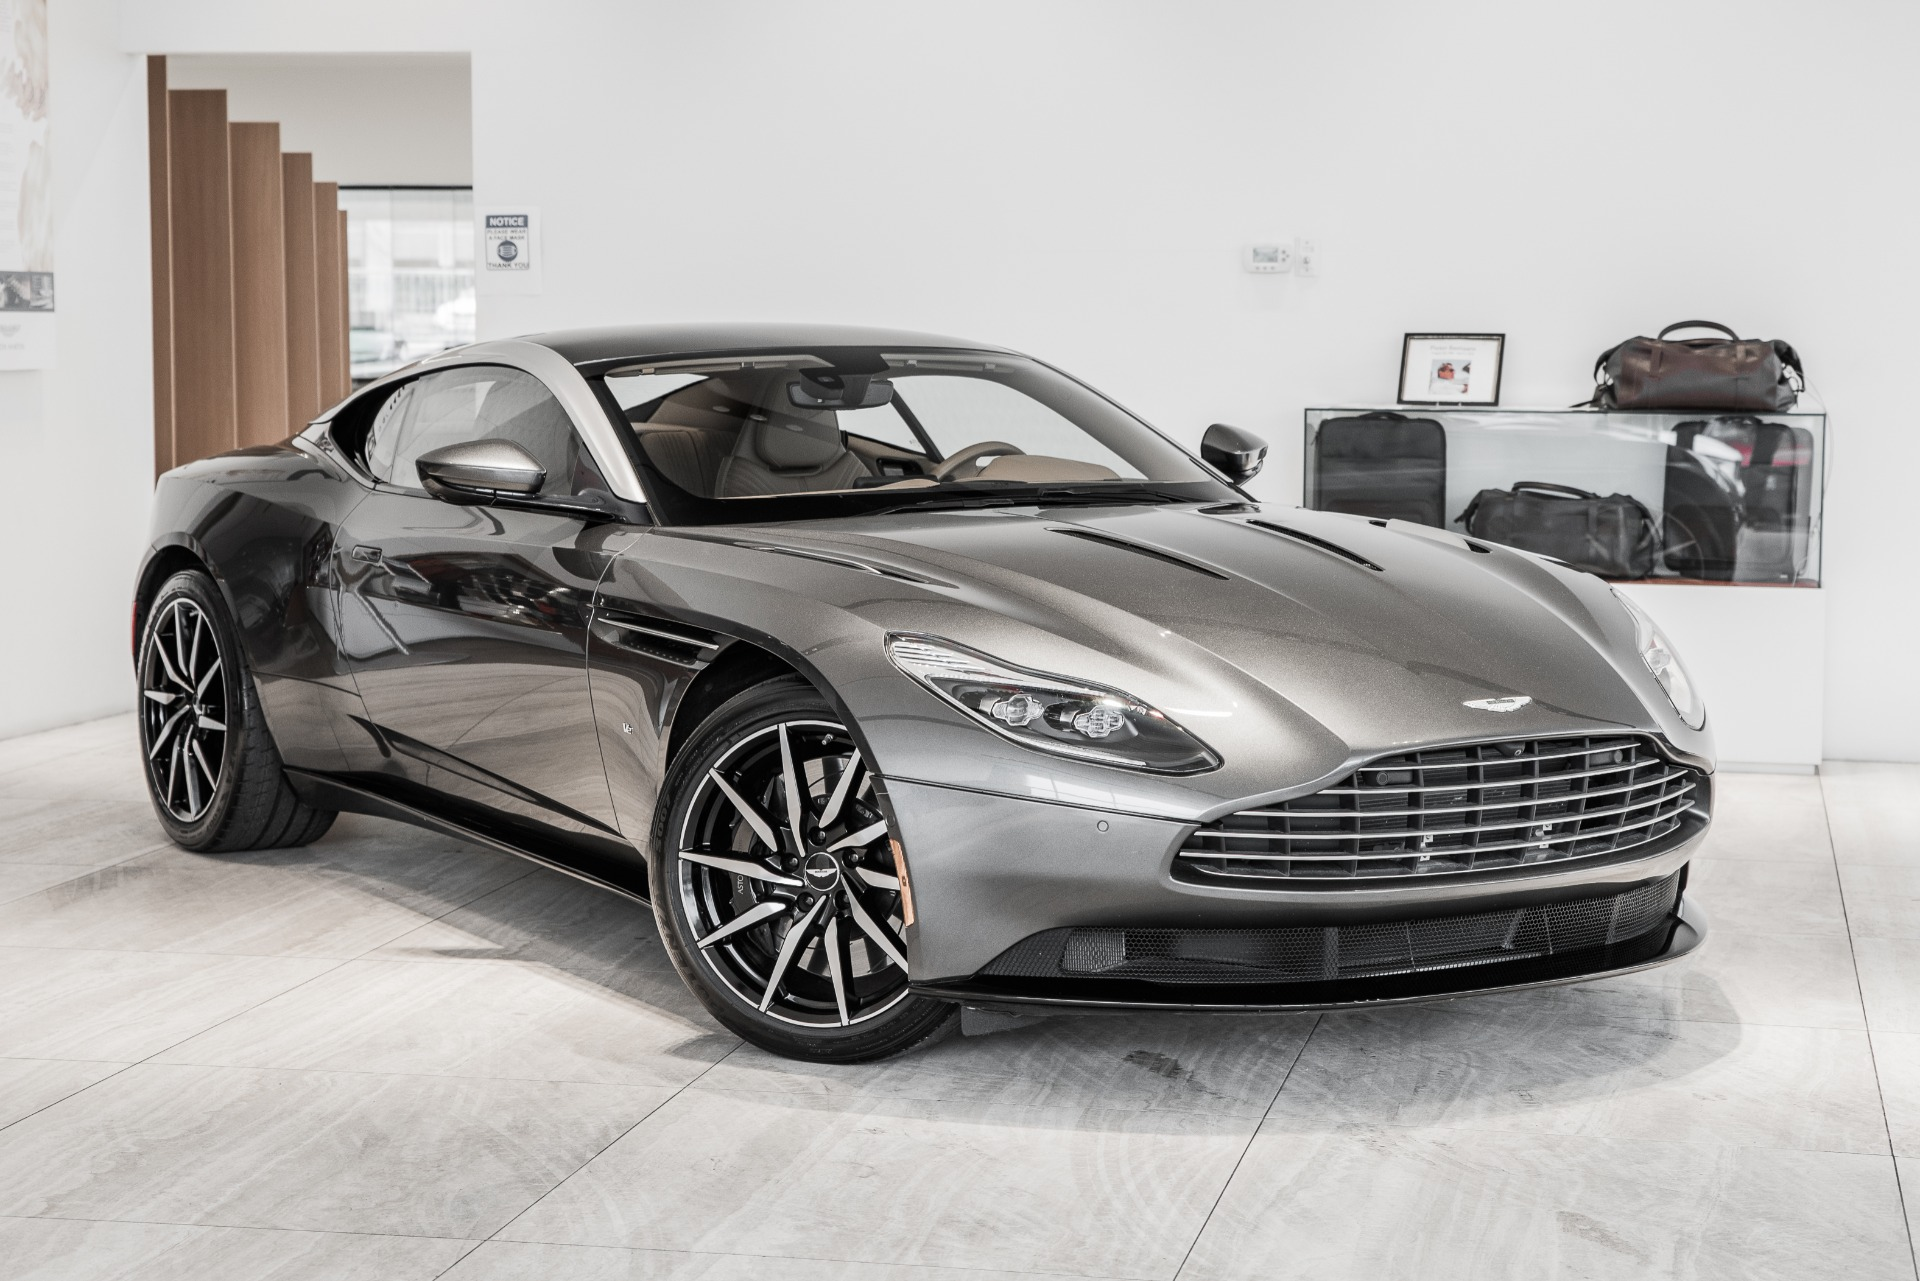 Used 2017 Aston Martin Db11 For Sale Sold Exclusive Automotive Group Koenigsegg Dc Stock Pl01983 2017 q by aston martin db11 2